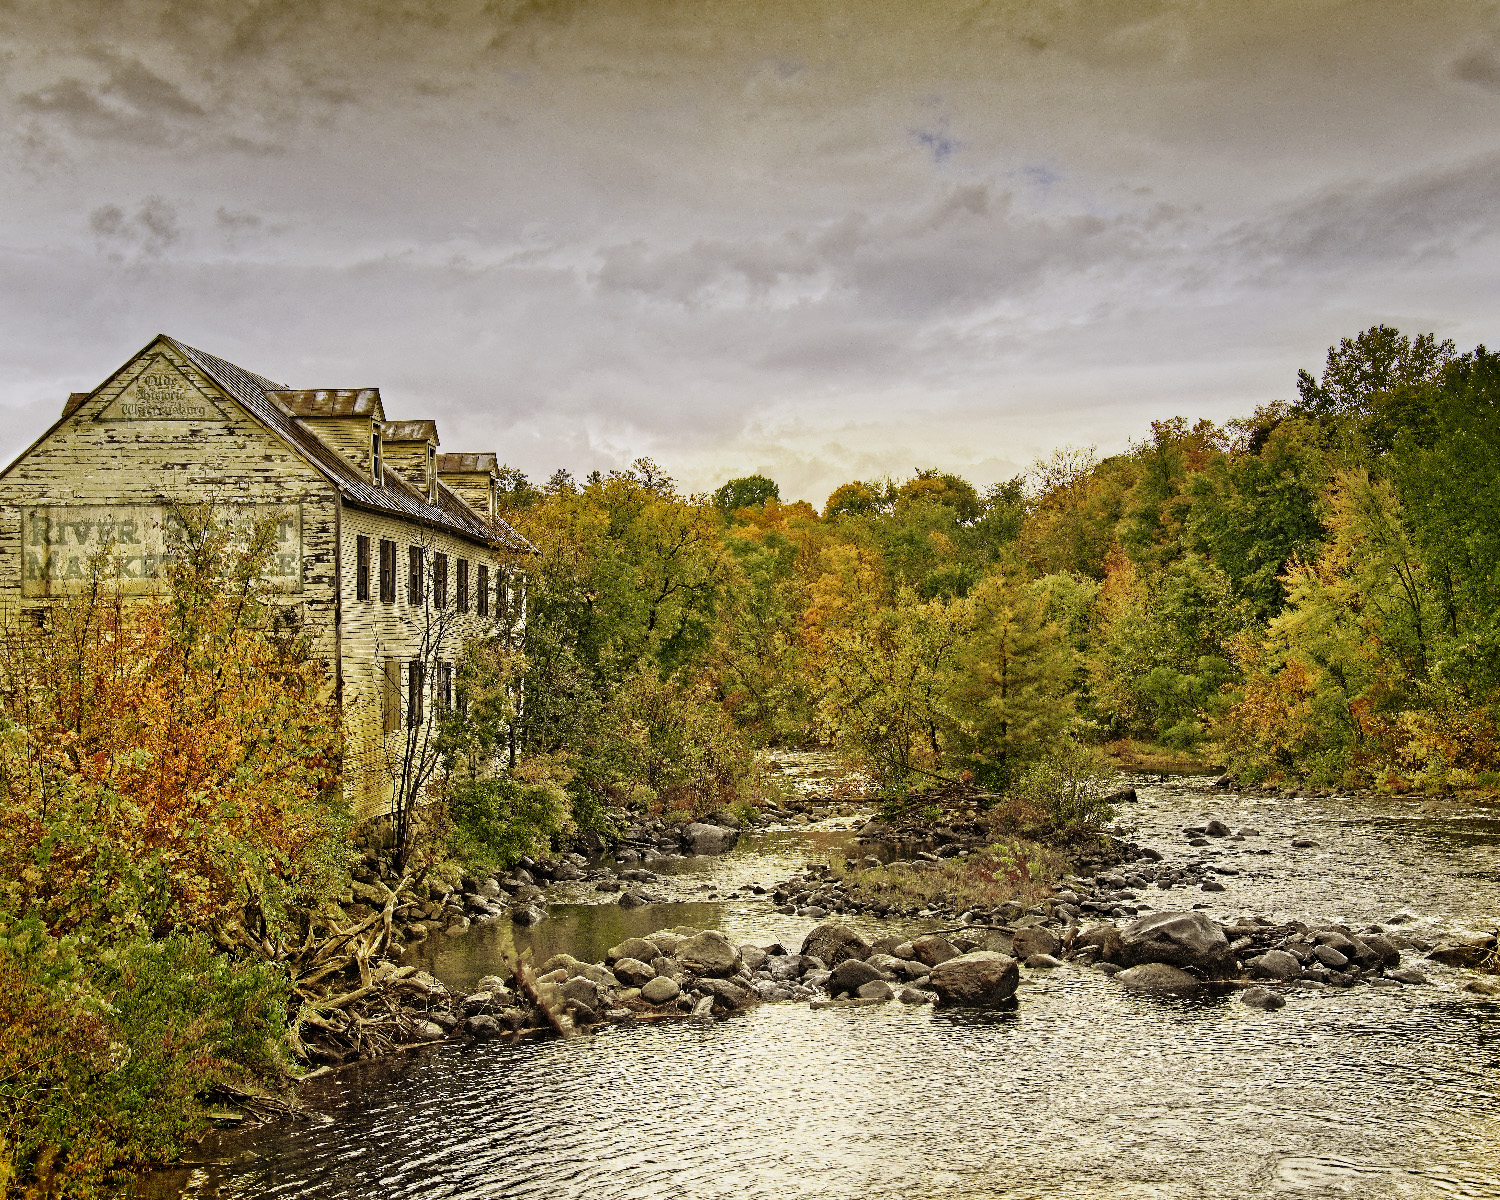 Stan Saft - Beside the River - Hudson Valley, NY